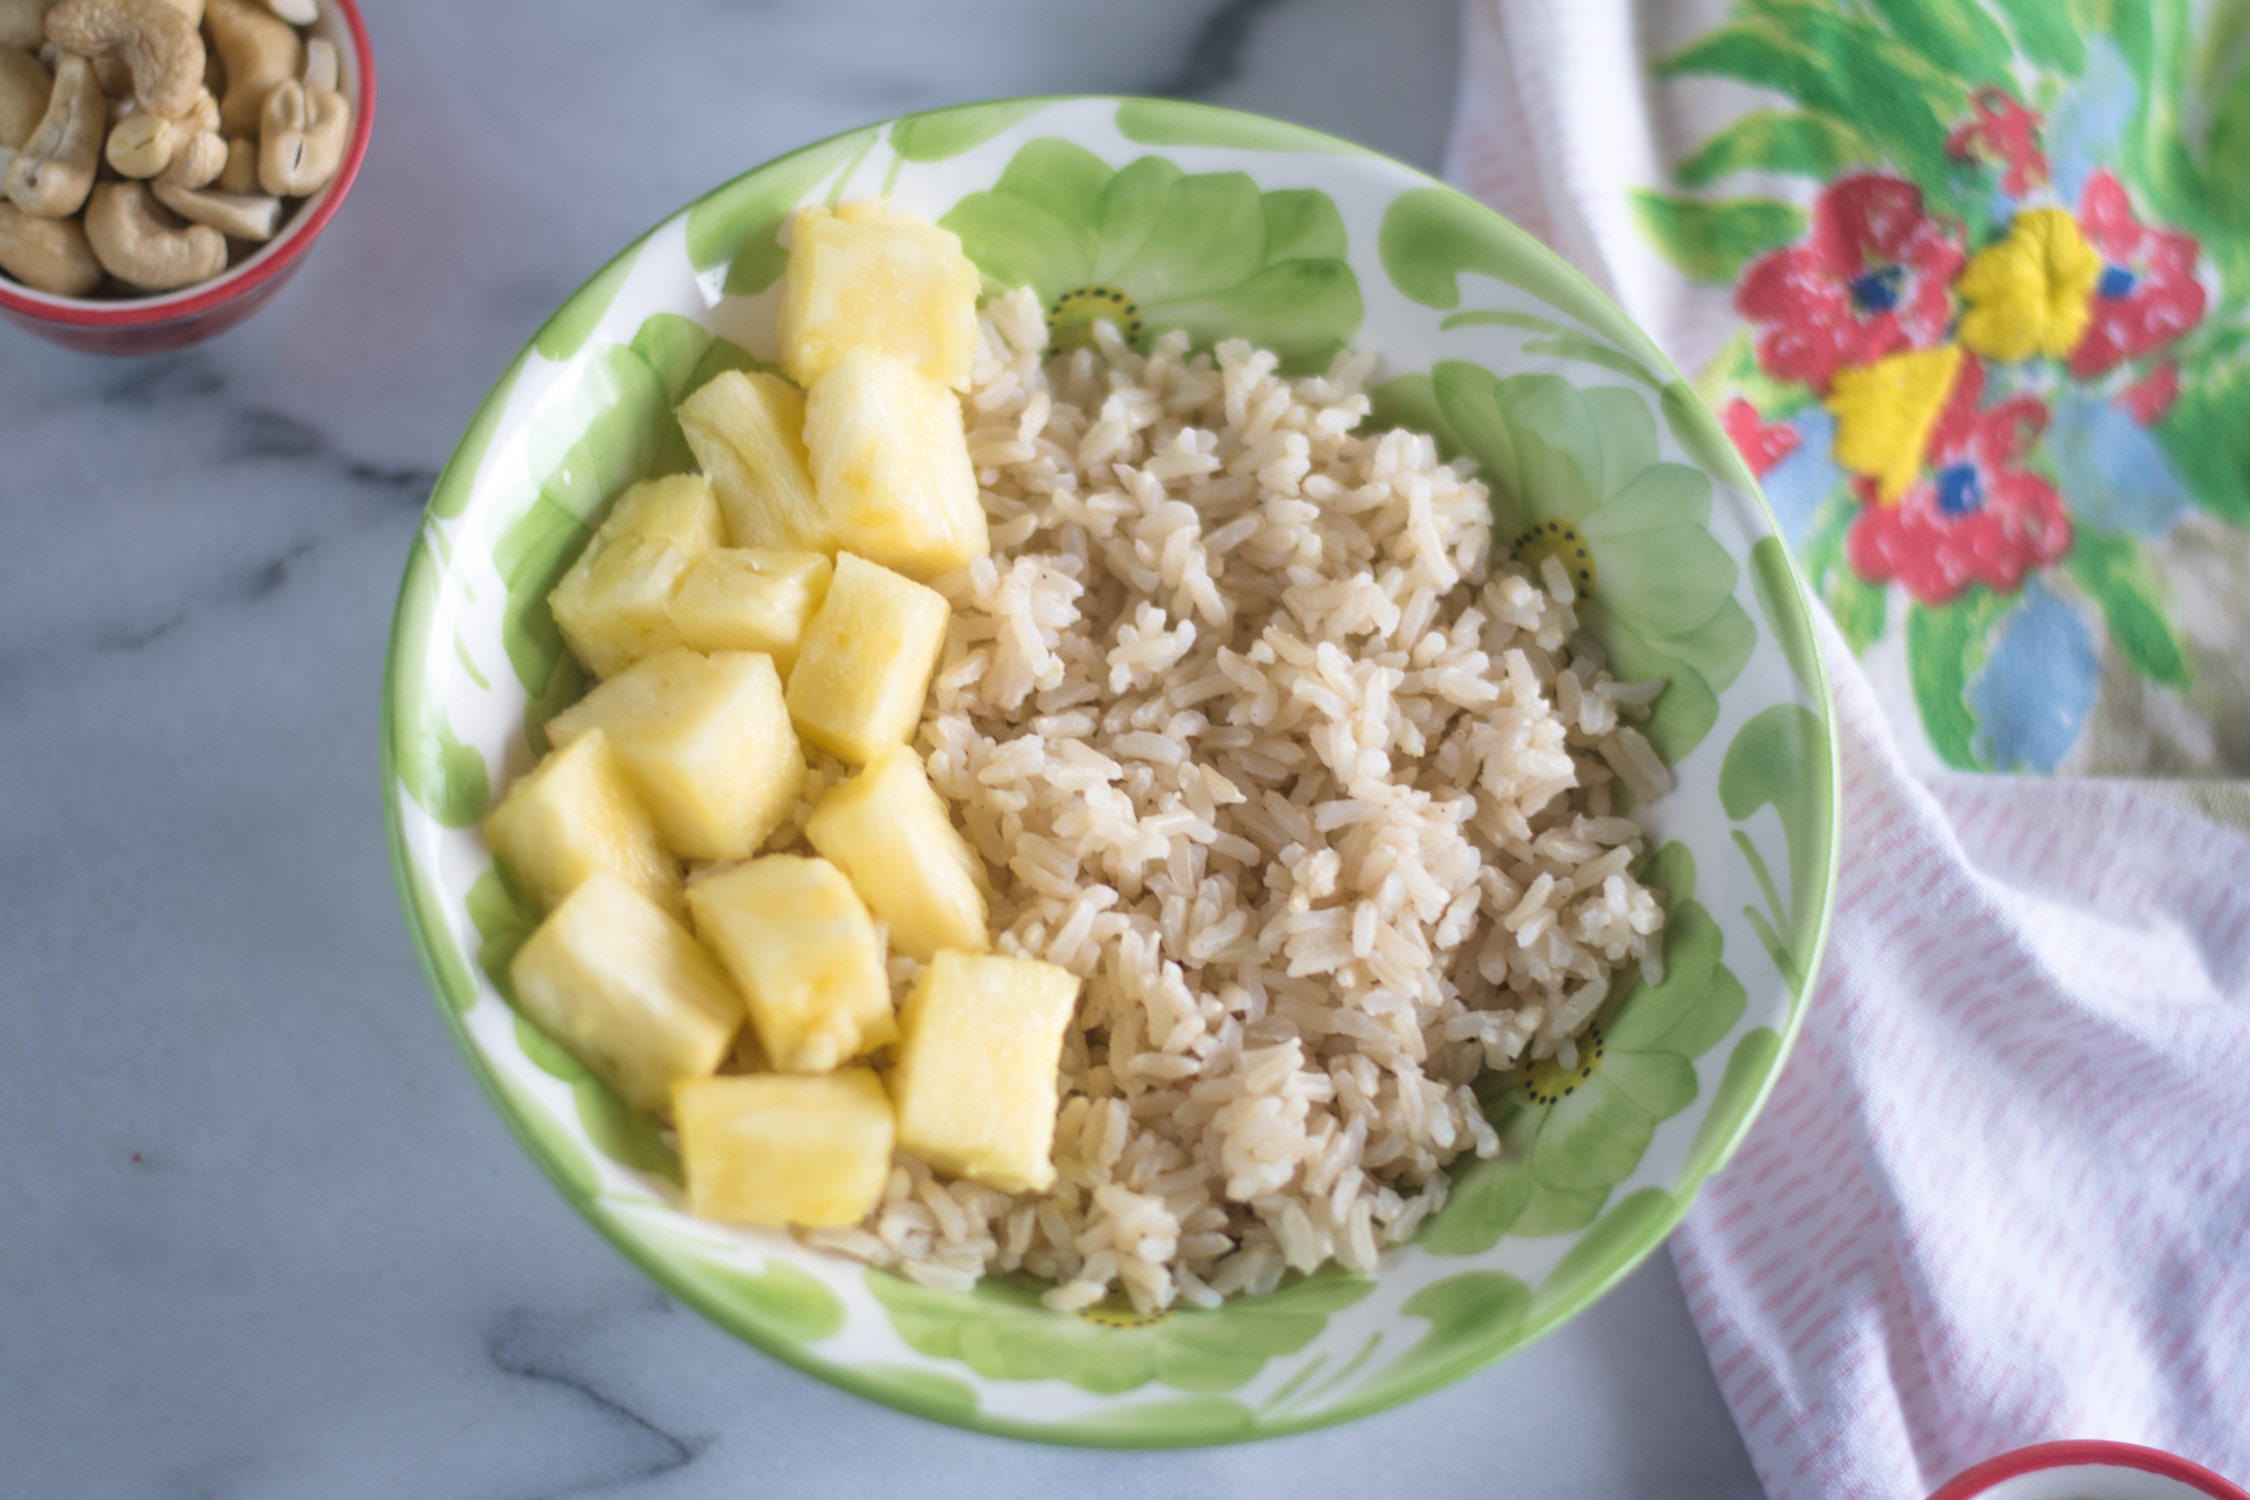 A Touch of the Tropics Rice Bowl starts by adding cooked jasmine rice to a bowl. The rice is topped with fresh pineapple, cashews, roasted sweet potatoes, and hemp seeds.